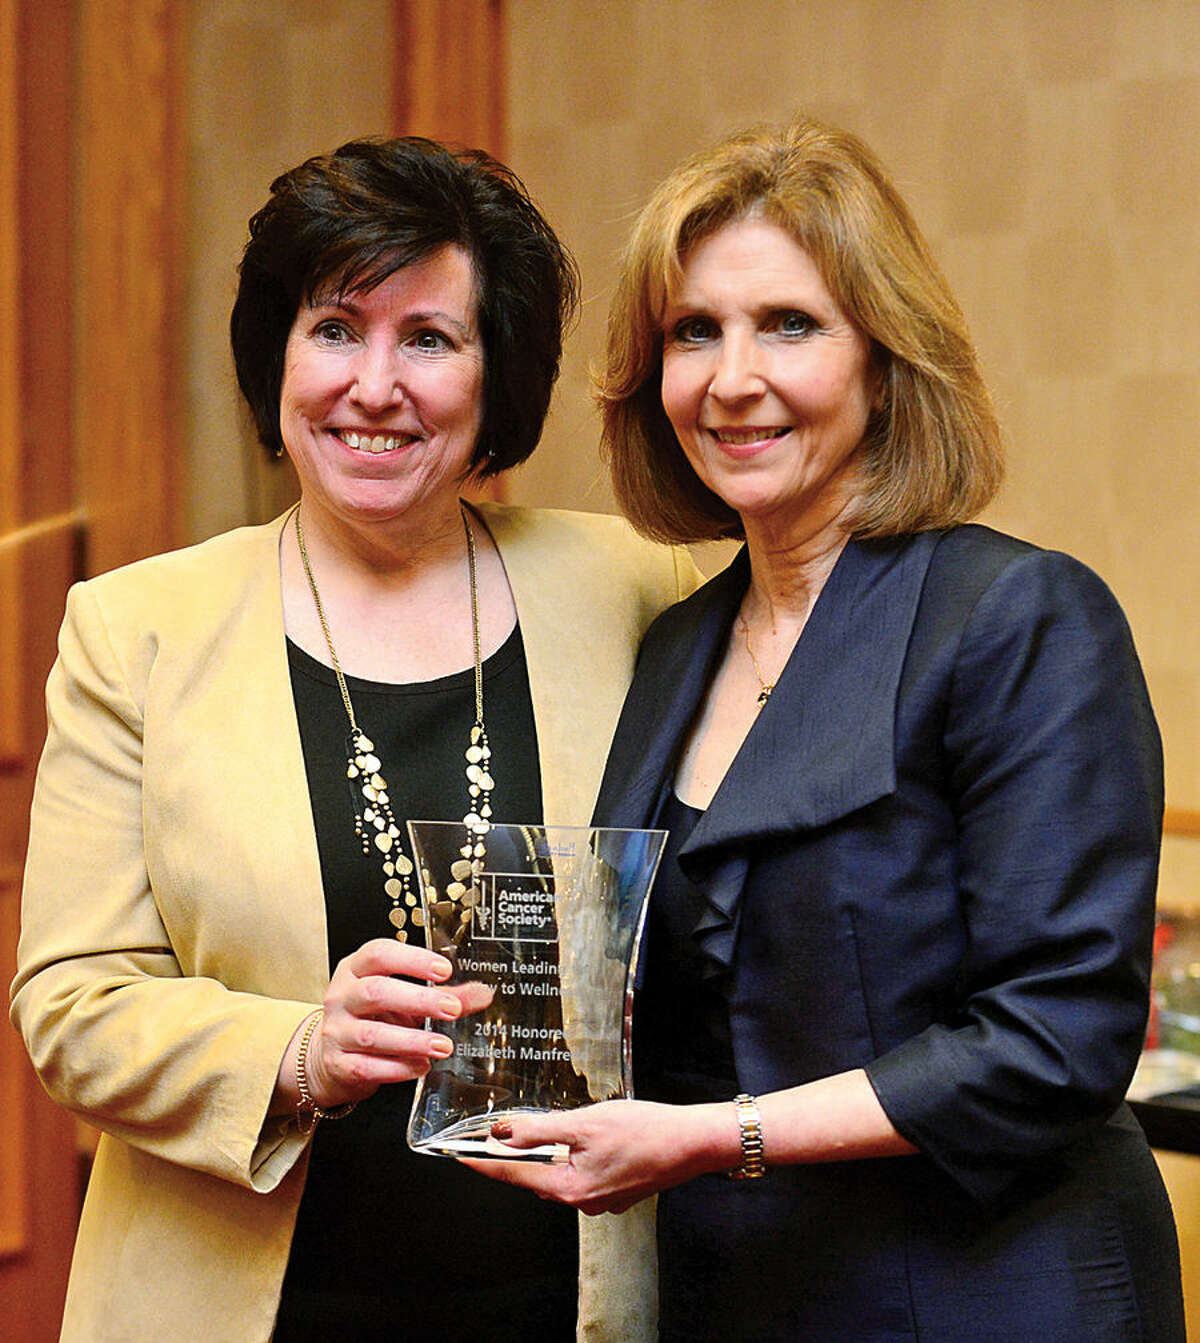 Hour photo / Erik Trautmann American Cancer Society Executive Vice President Peg Camp honors Director of Cancer Services at Stamford Hospital's Carl & Dorothy Bennett Cancer Center, Elizabeth Manfredo, MS, RD, as The American Cancer Society hosts the inaugural